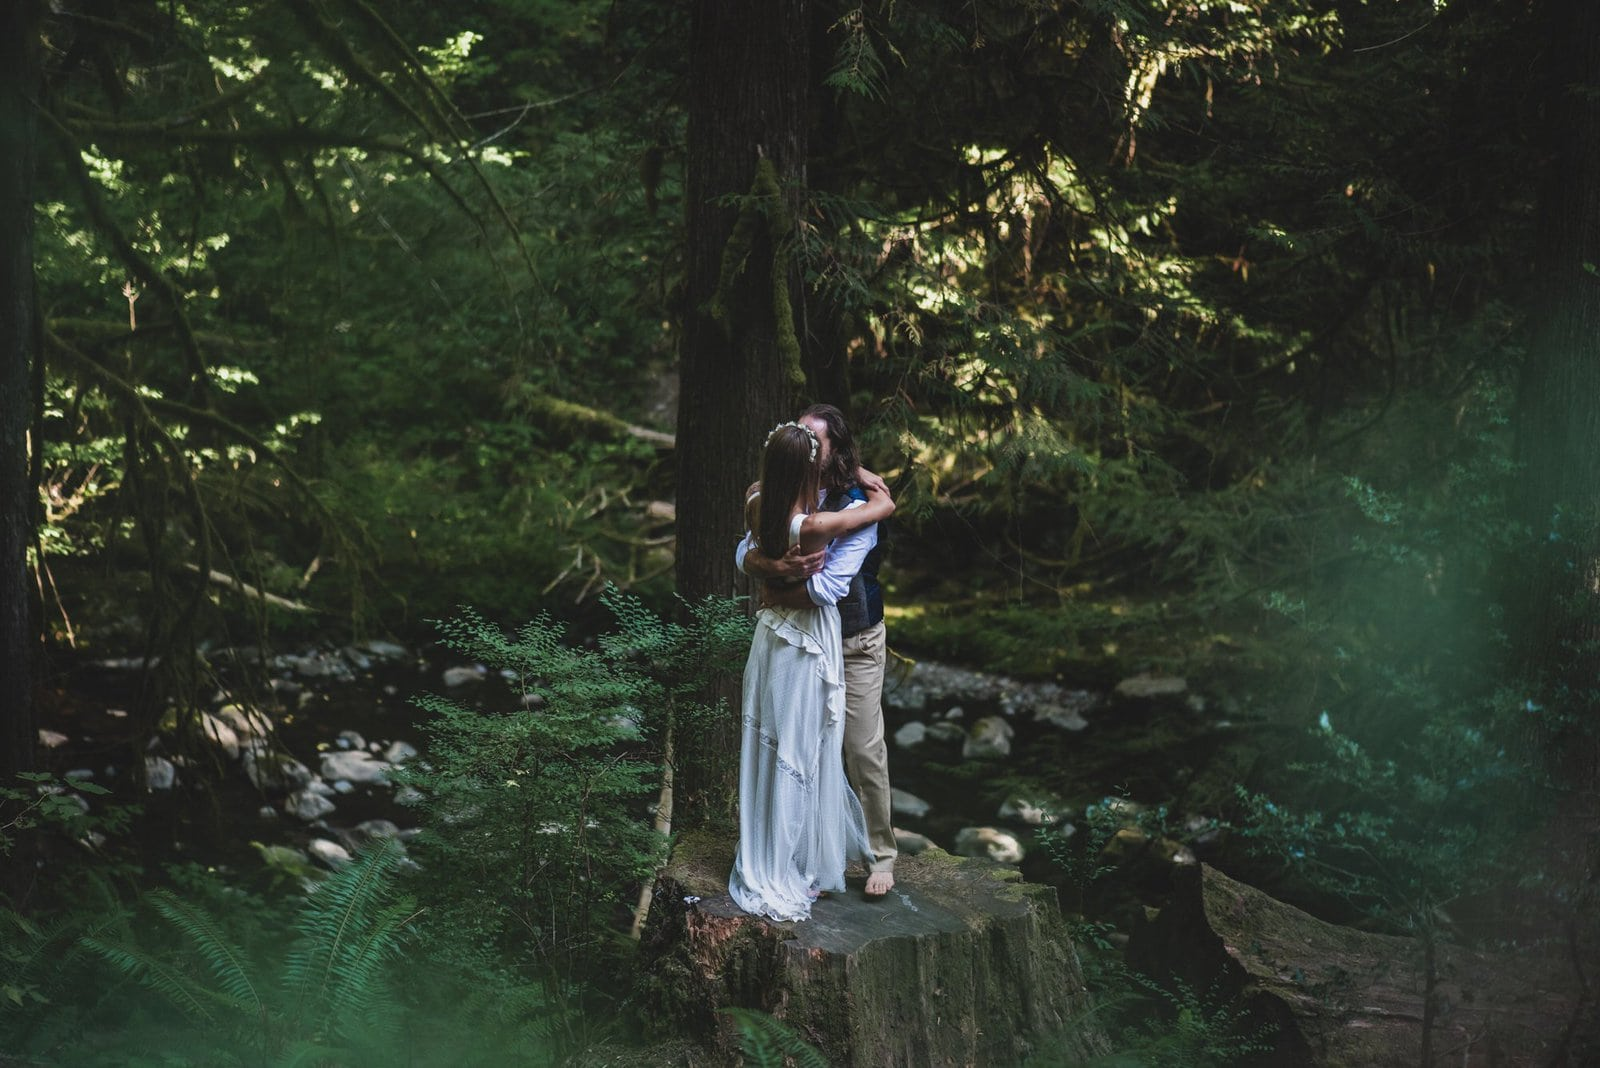 Bride and groom hug during intimate forest wedding.